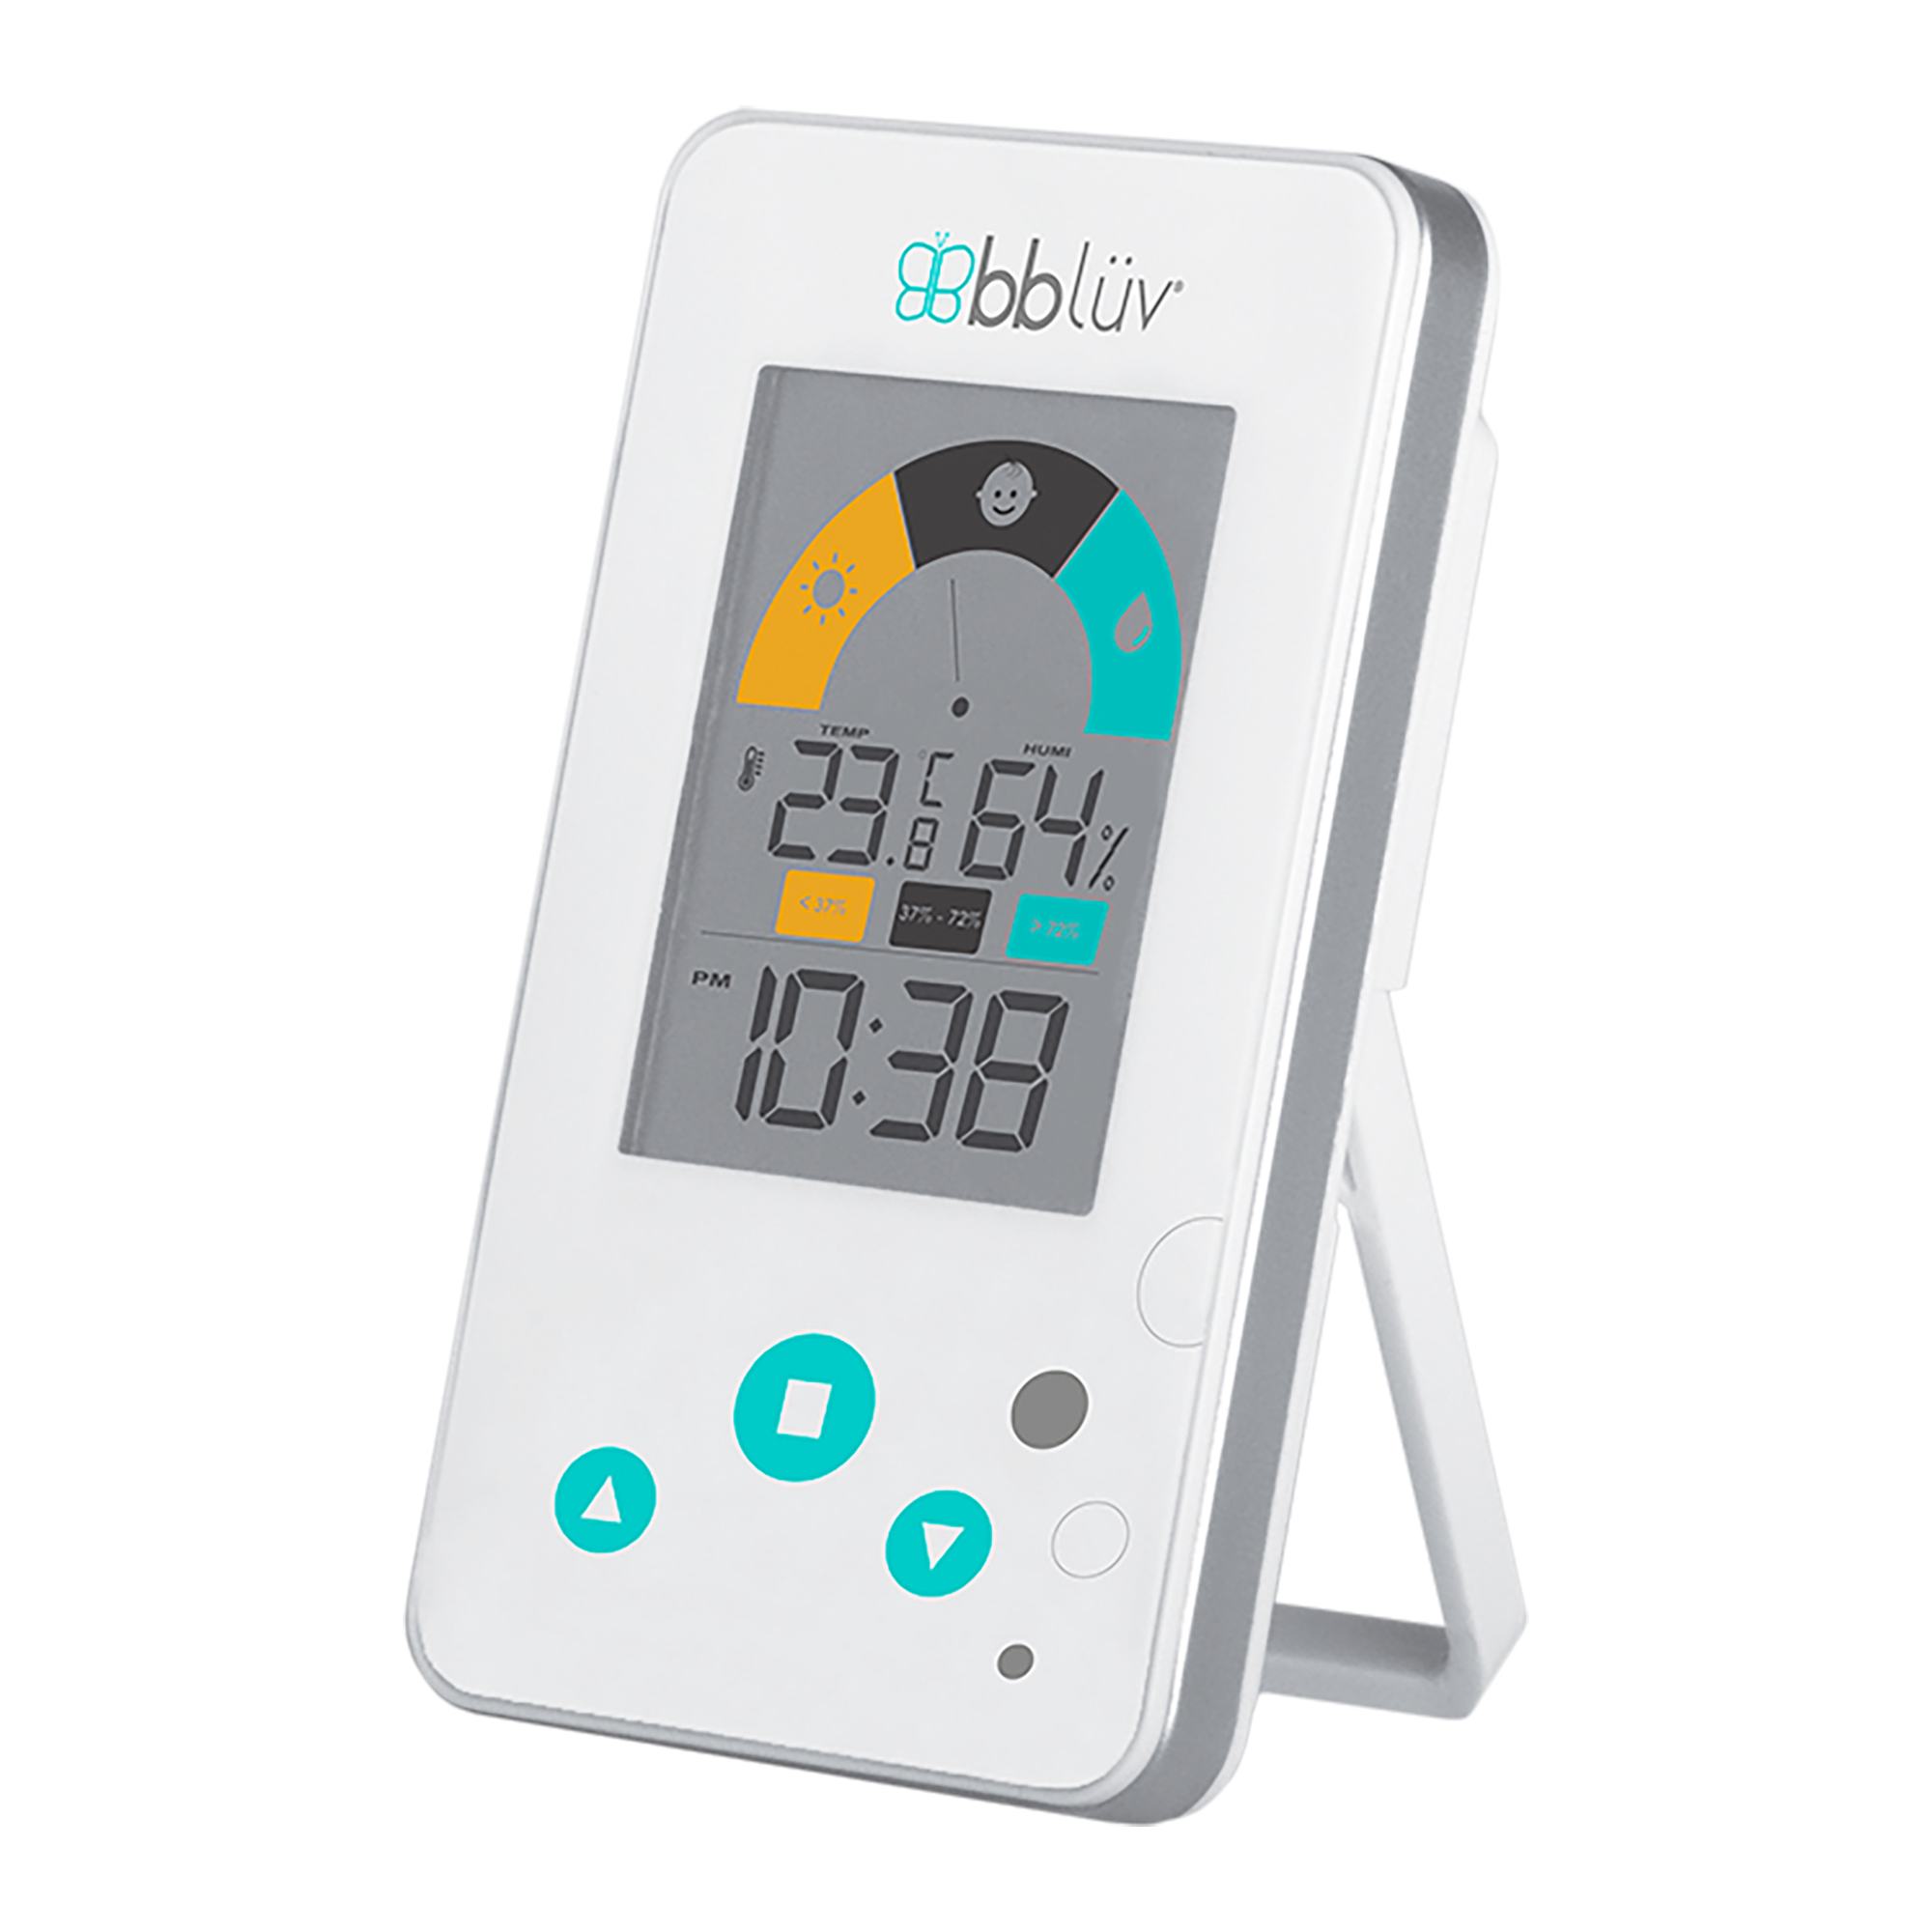 Igrö � 2 in 1 digital Thermometer Hygrometer for Babys Room by Hygrometers